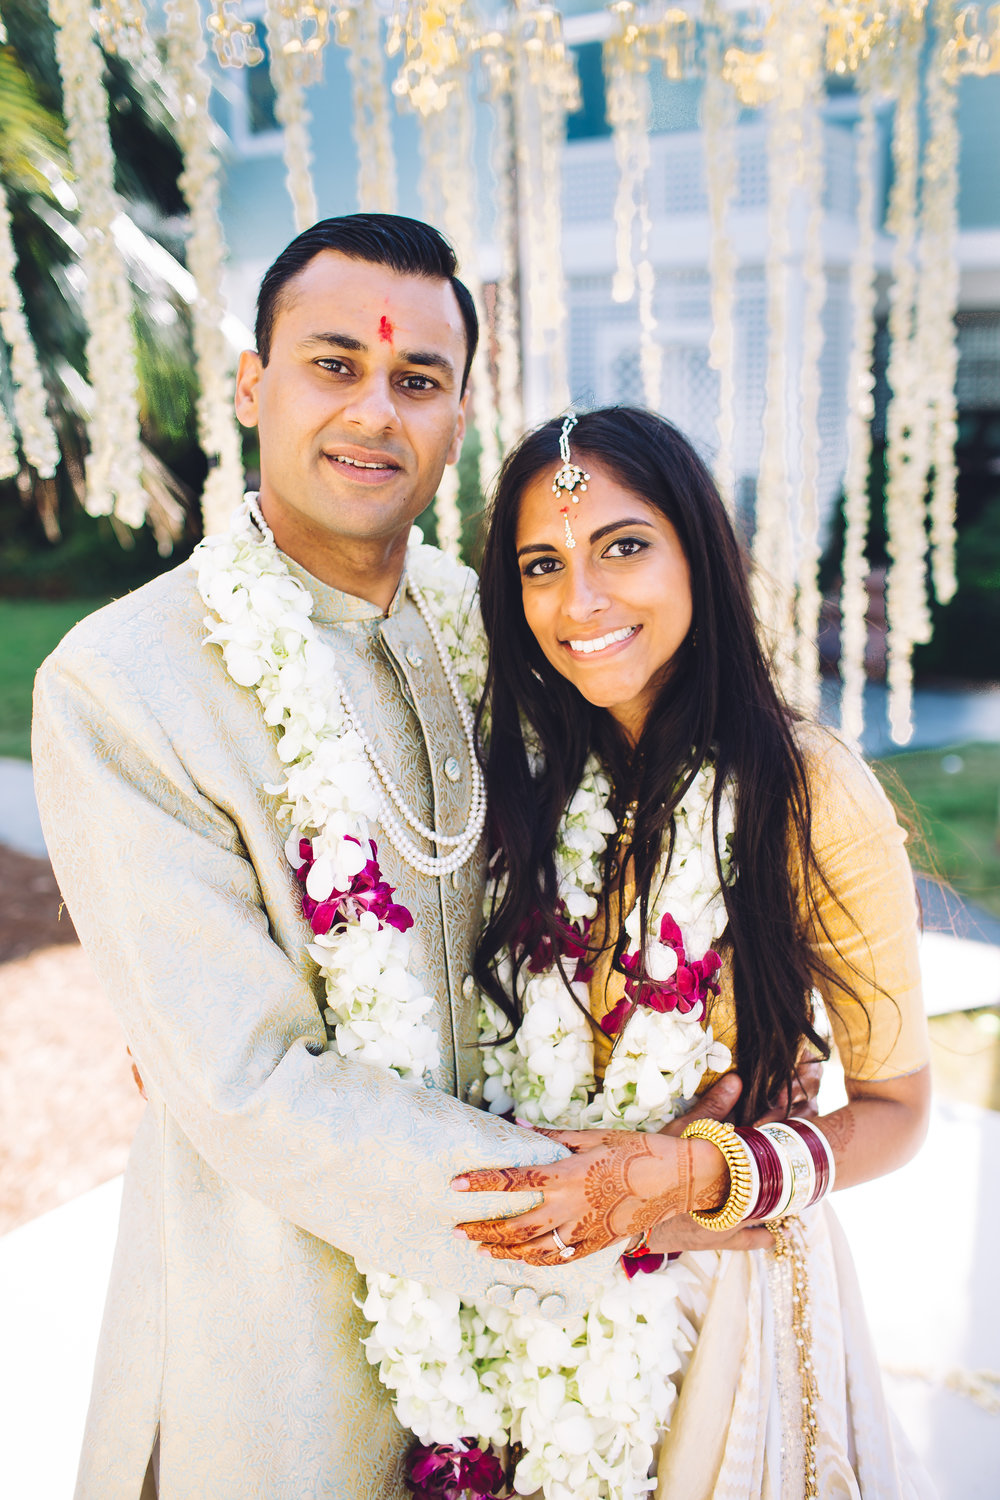 INDIAN WEDDING, CHARLESTON WEDDING, DESTINATION WEDDING, DESTINATION WEDDING PHOTOGRAPHERS, CHARLESTON WEDDING PHOTOGRAPHERS